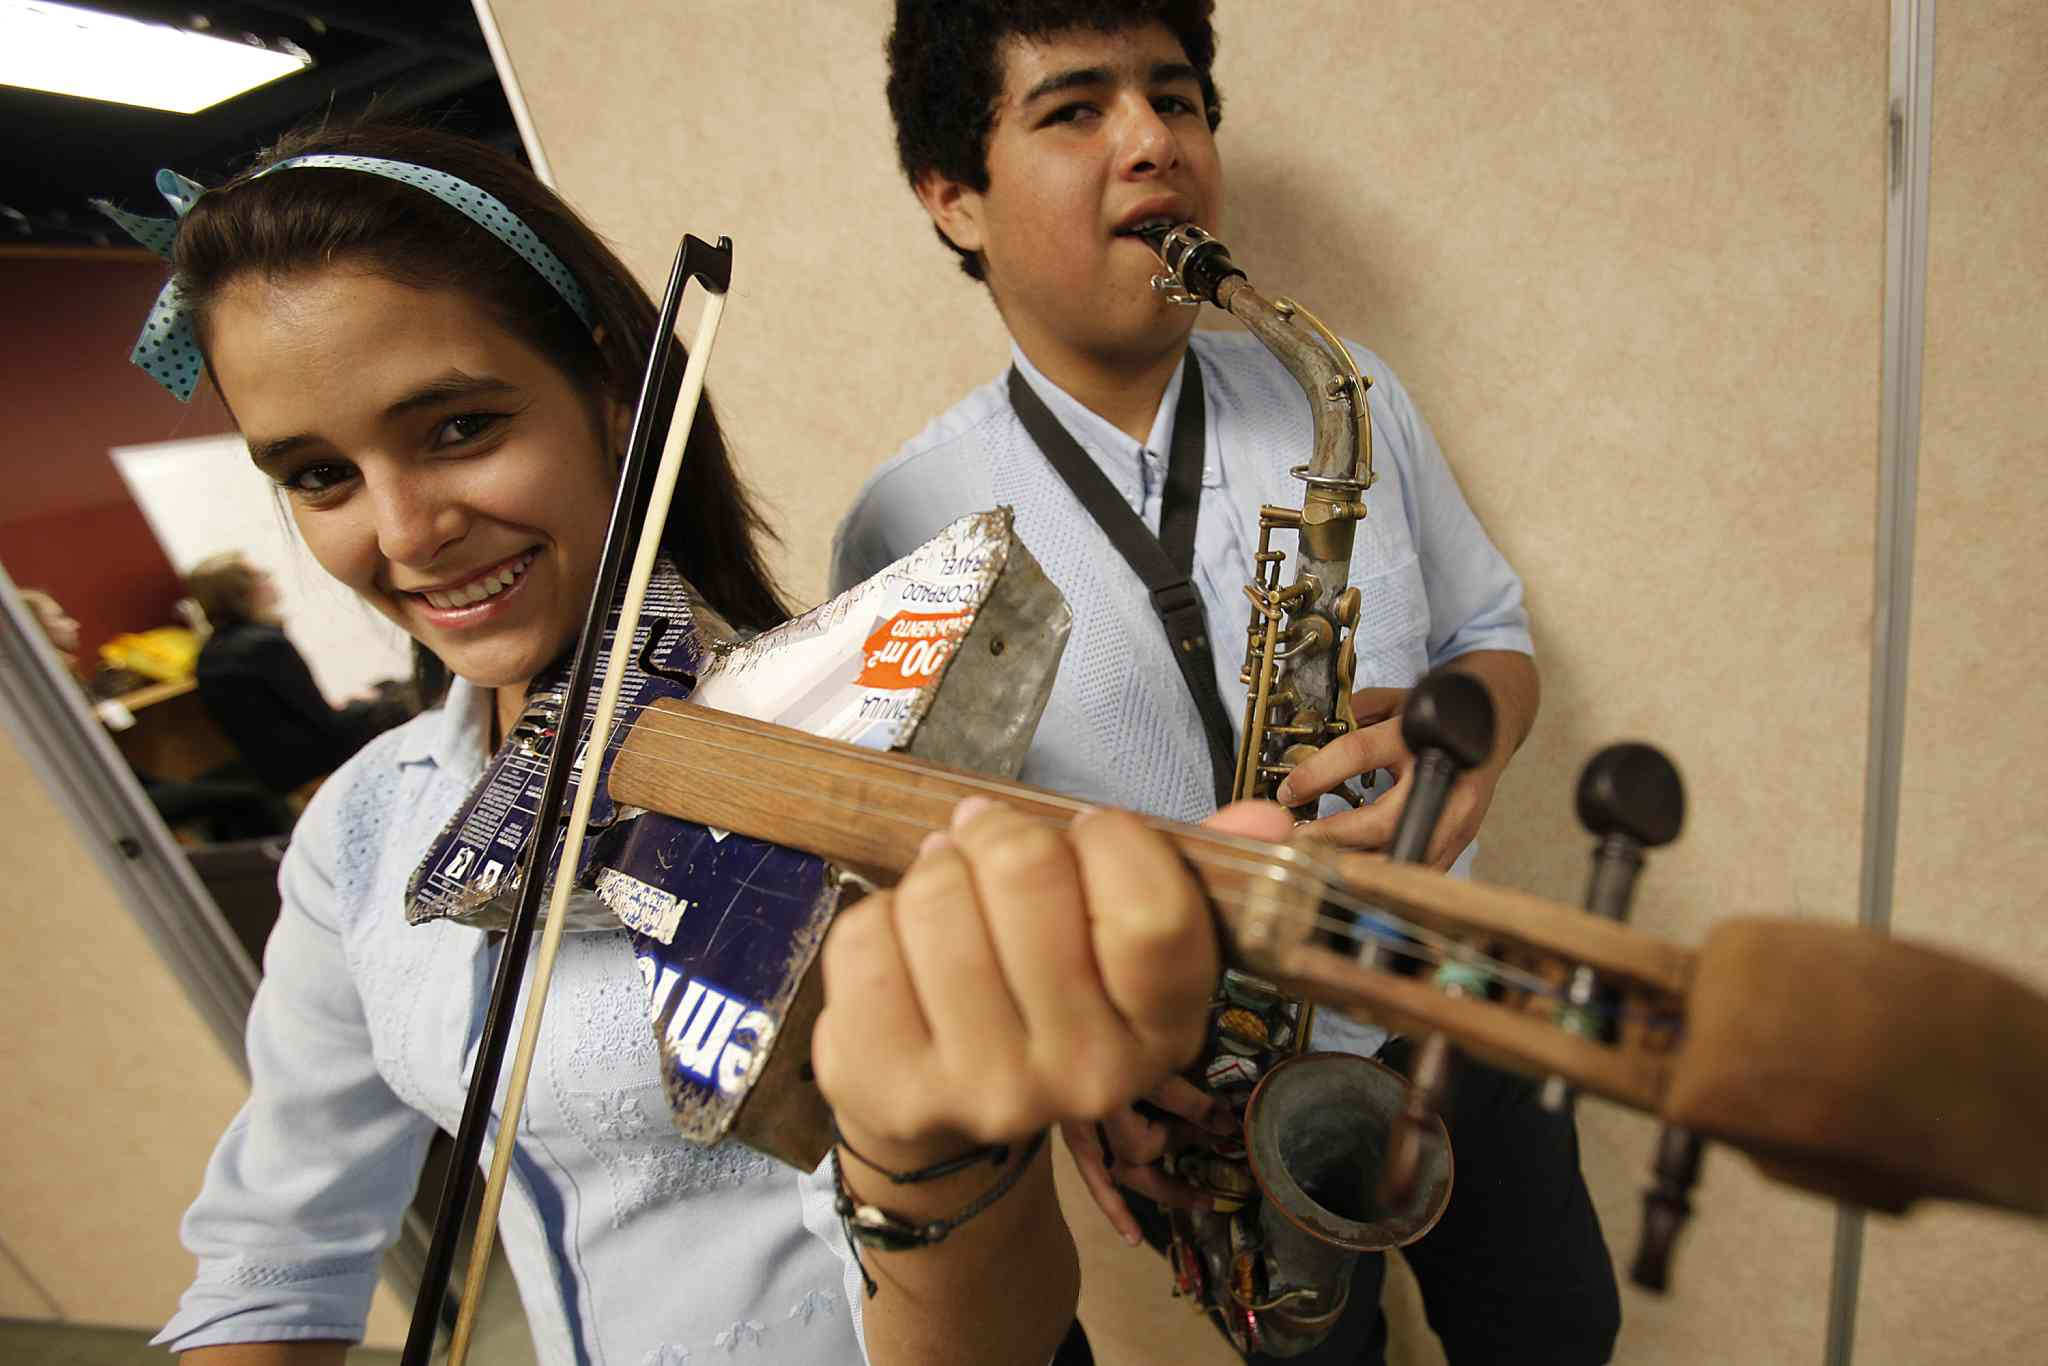 John Woods / Winnipeg Free Press Teenage musicians Tania Vera and Tobias Armoa from Cateura, Paraguay, were in Winnipeg to play their instruments made from trash found on a landfill, in a concert at North Kildonan Mennonite Brethren Church Sunday.